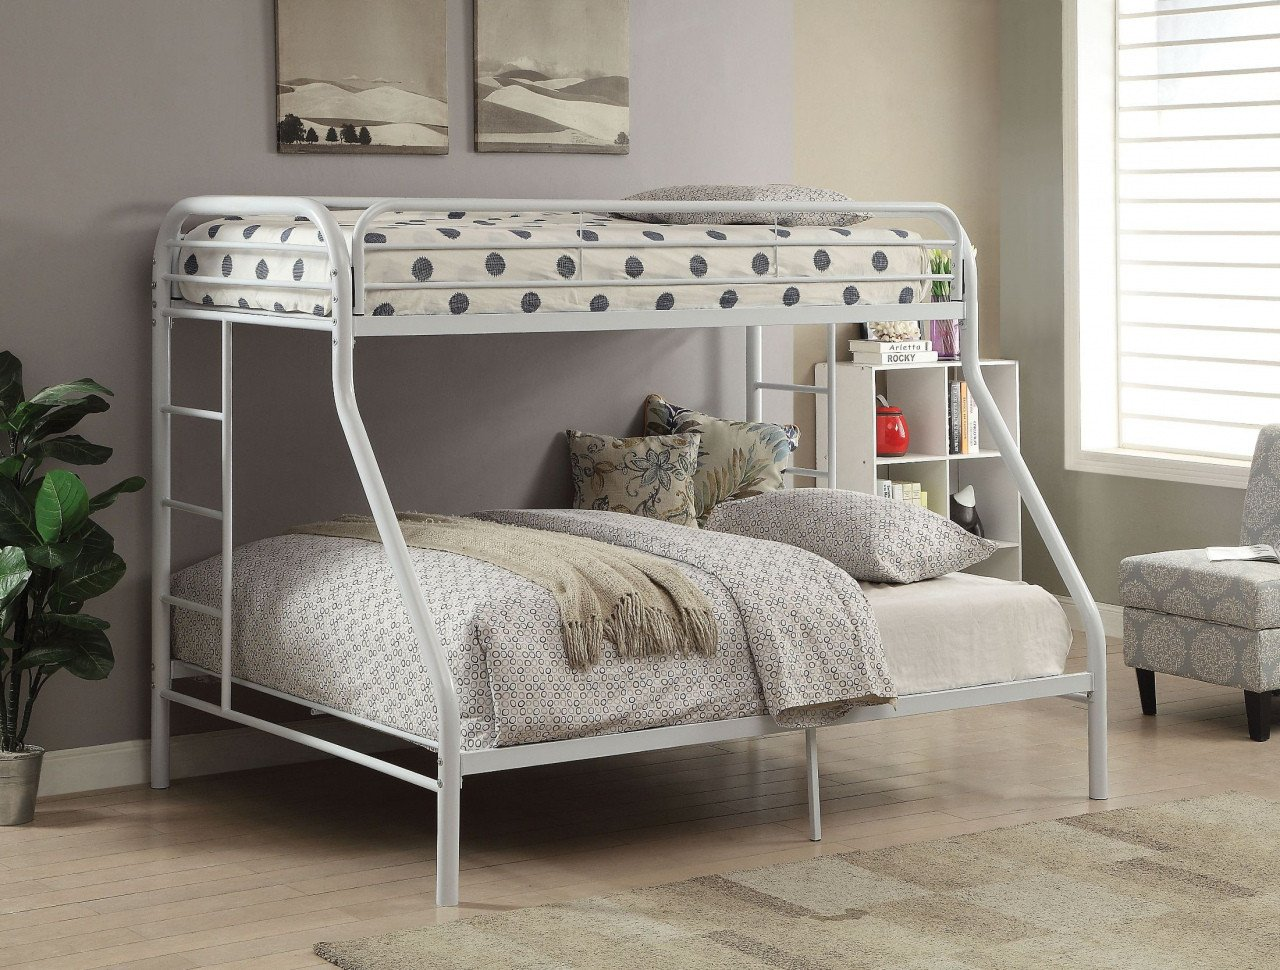 Twin Xl Bedroom Set Best Of Twin Xl Metal Bed Frame — Procura Home Blog